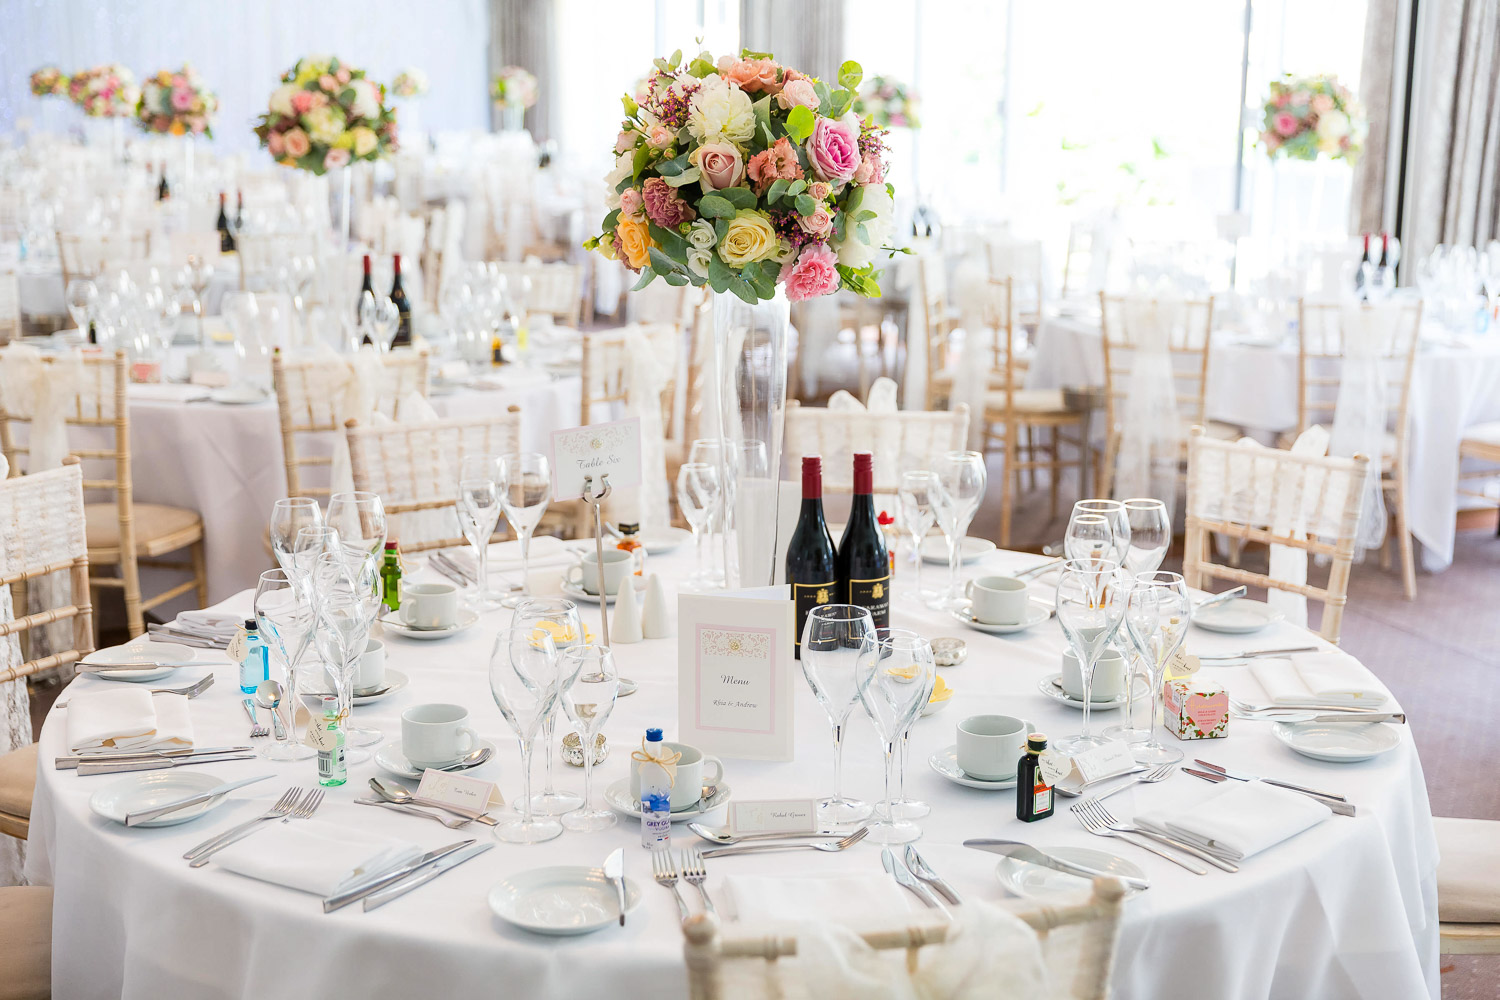 south wales wedding suppliers -9.jpg